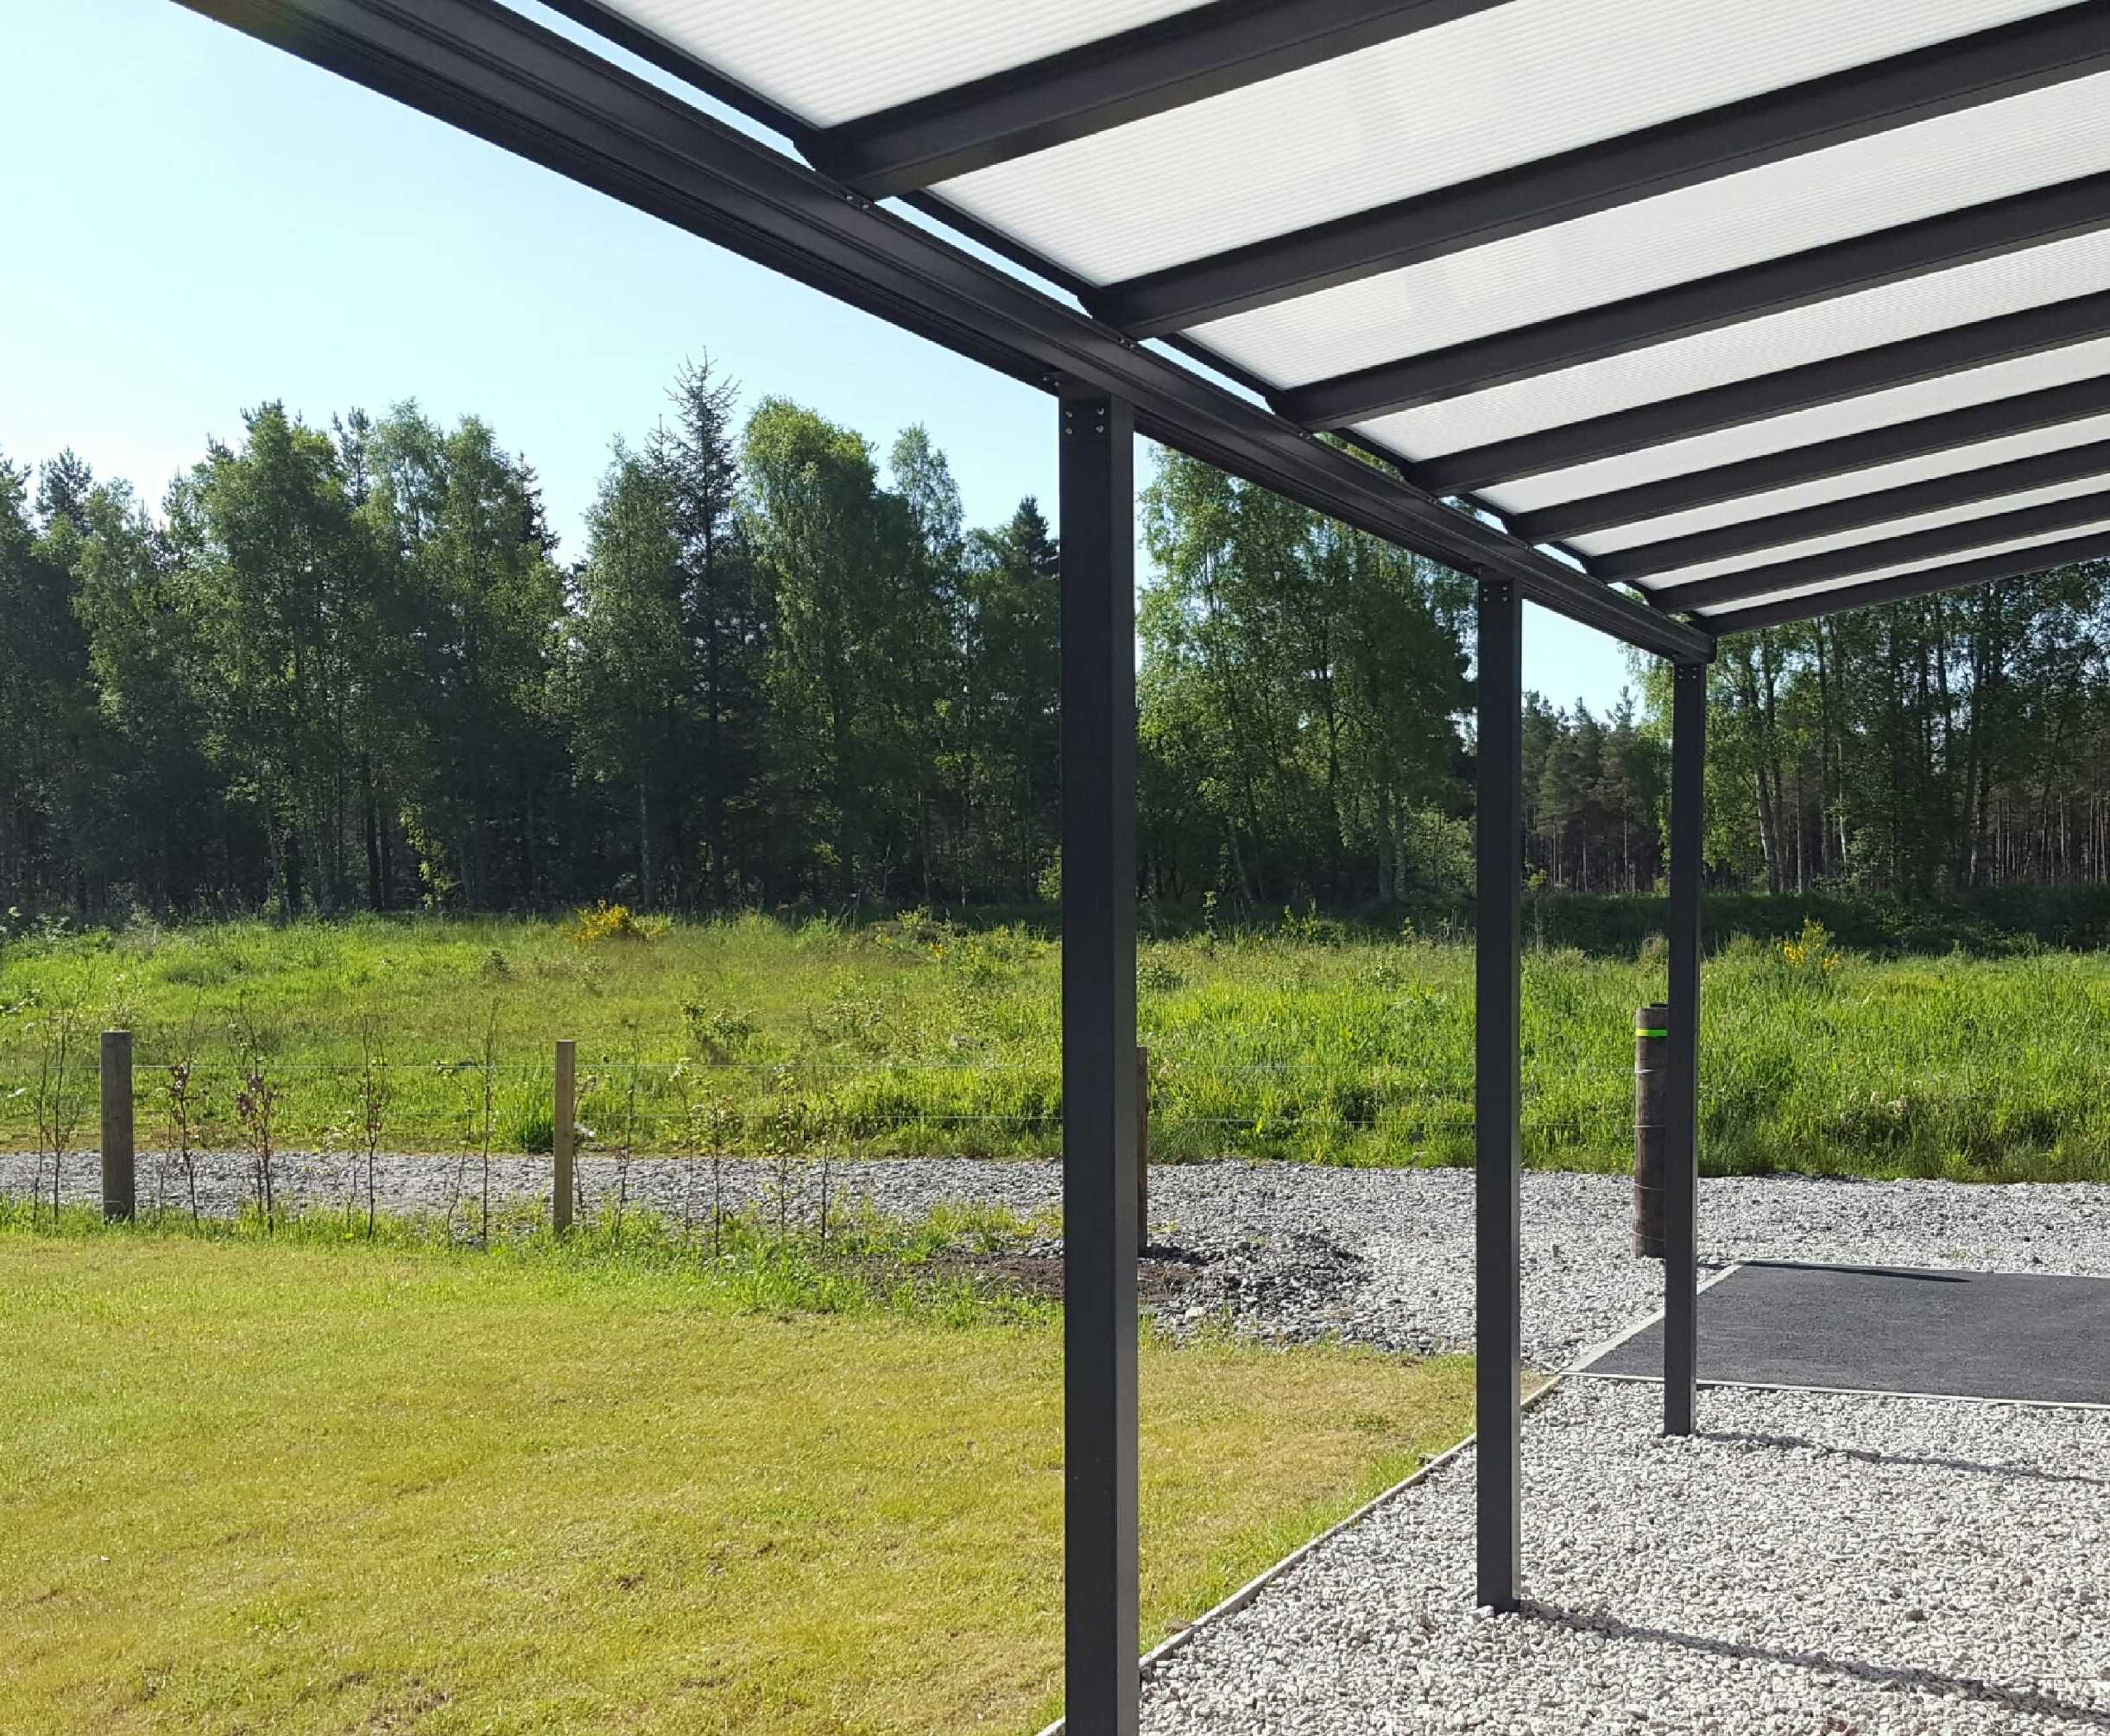 Omega Smart Lean-To Canopy, Anthracite Grey, 16mm Polycarbonate Glazing - 9.1m (W) x 4.5m (P), (5) Supporting Posts